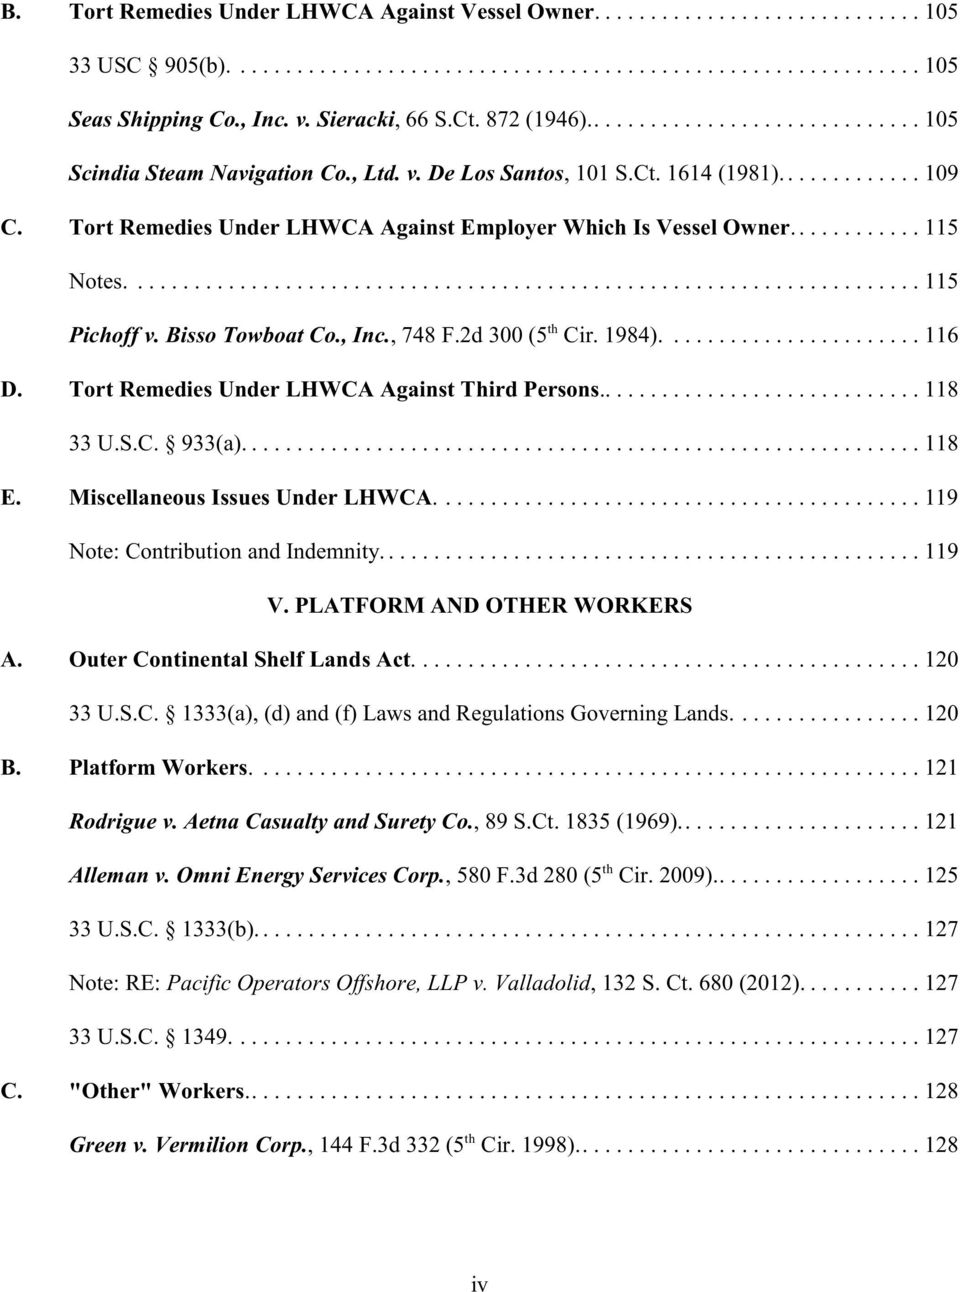 Tort Remedies Under LHWCA Against Employer Which Is Vessel Owner............ 115 Notes...................................................................... 115 th Pichoff v. Bisso Towboat Co., Inc.